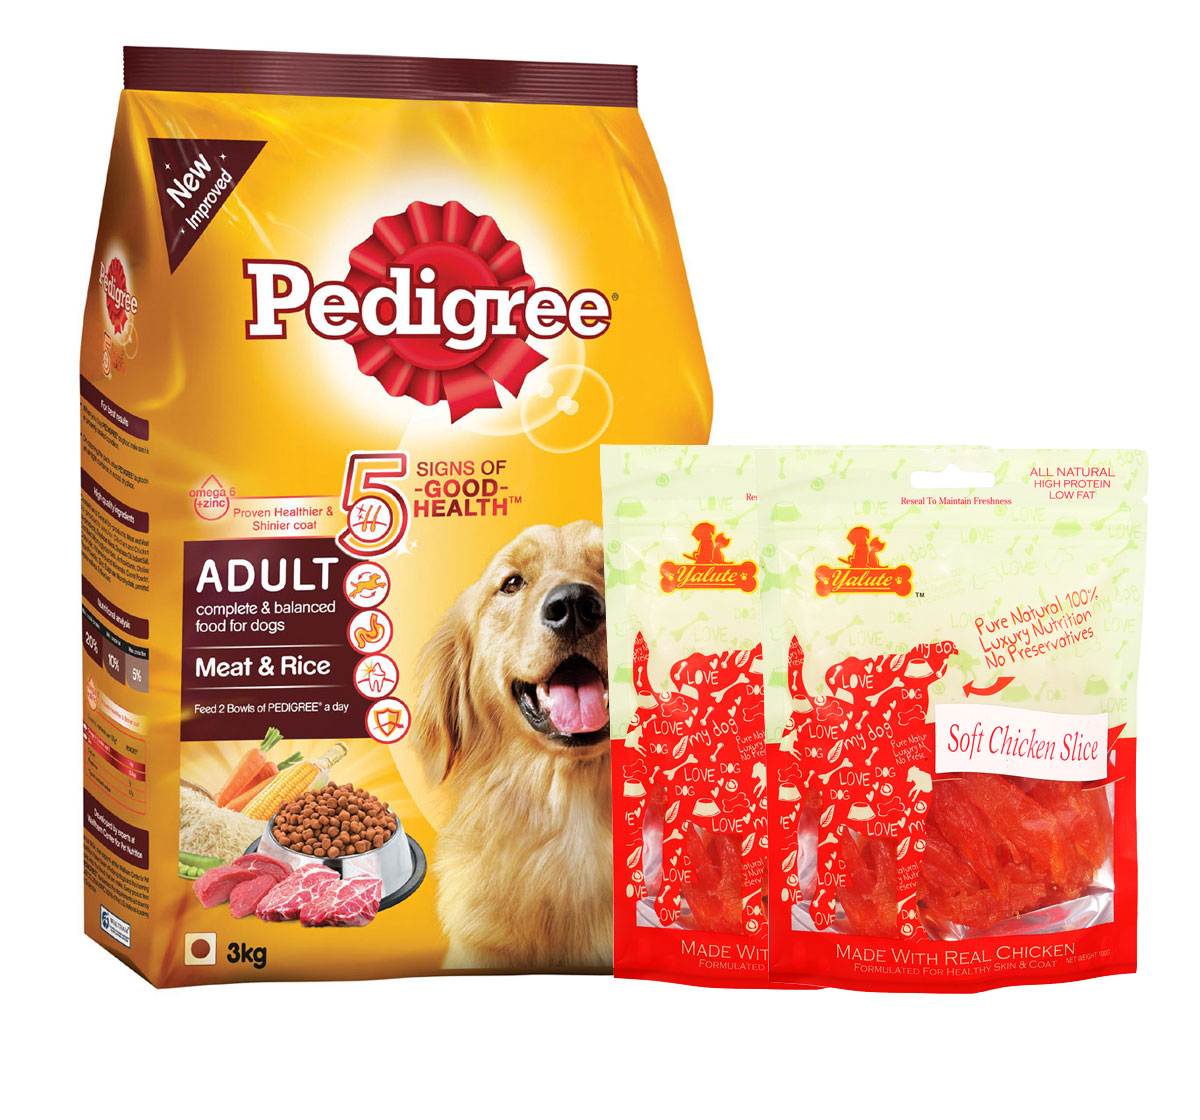 Pedigree Adult Dog Food Meat & Rice - 3 Kg  With Chicken Slices